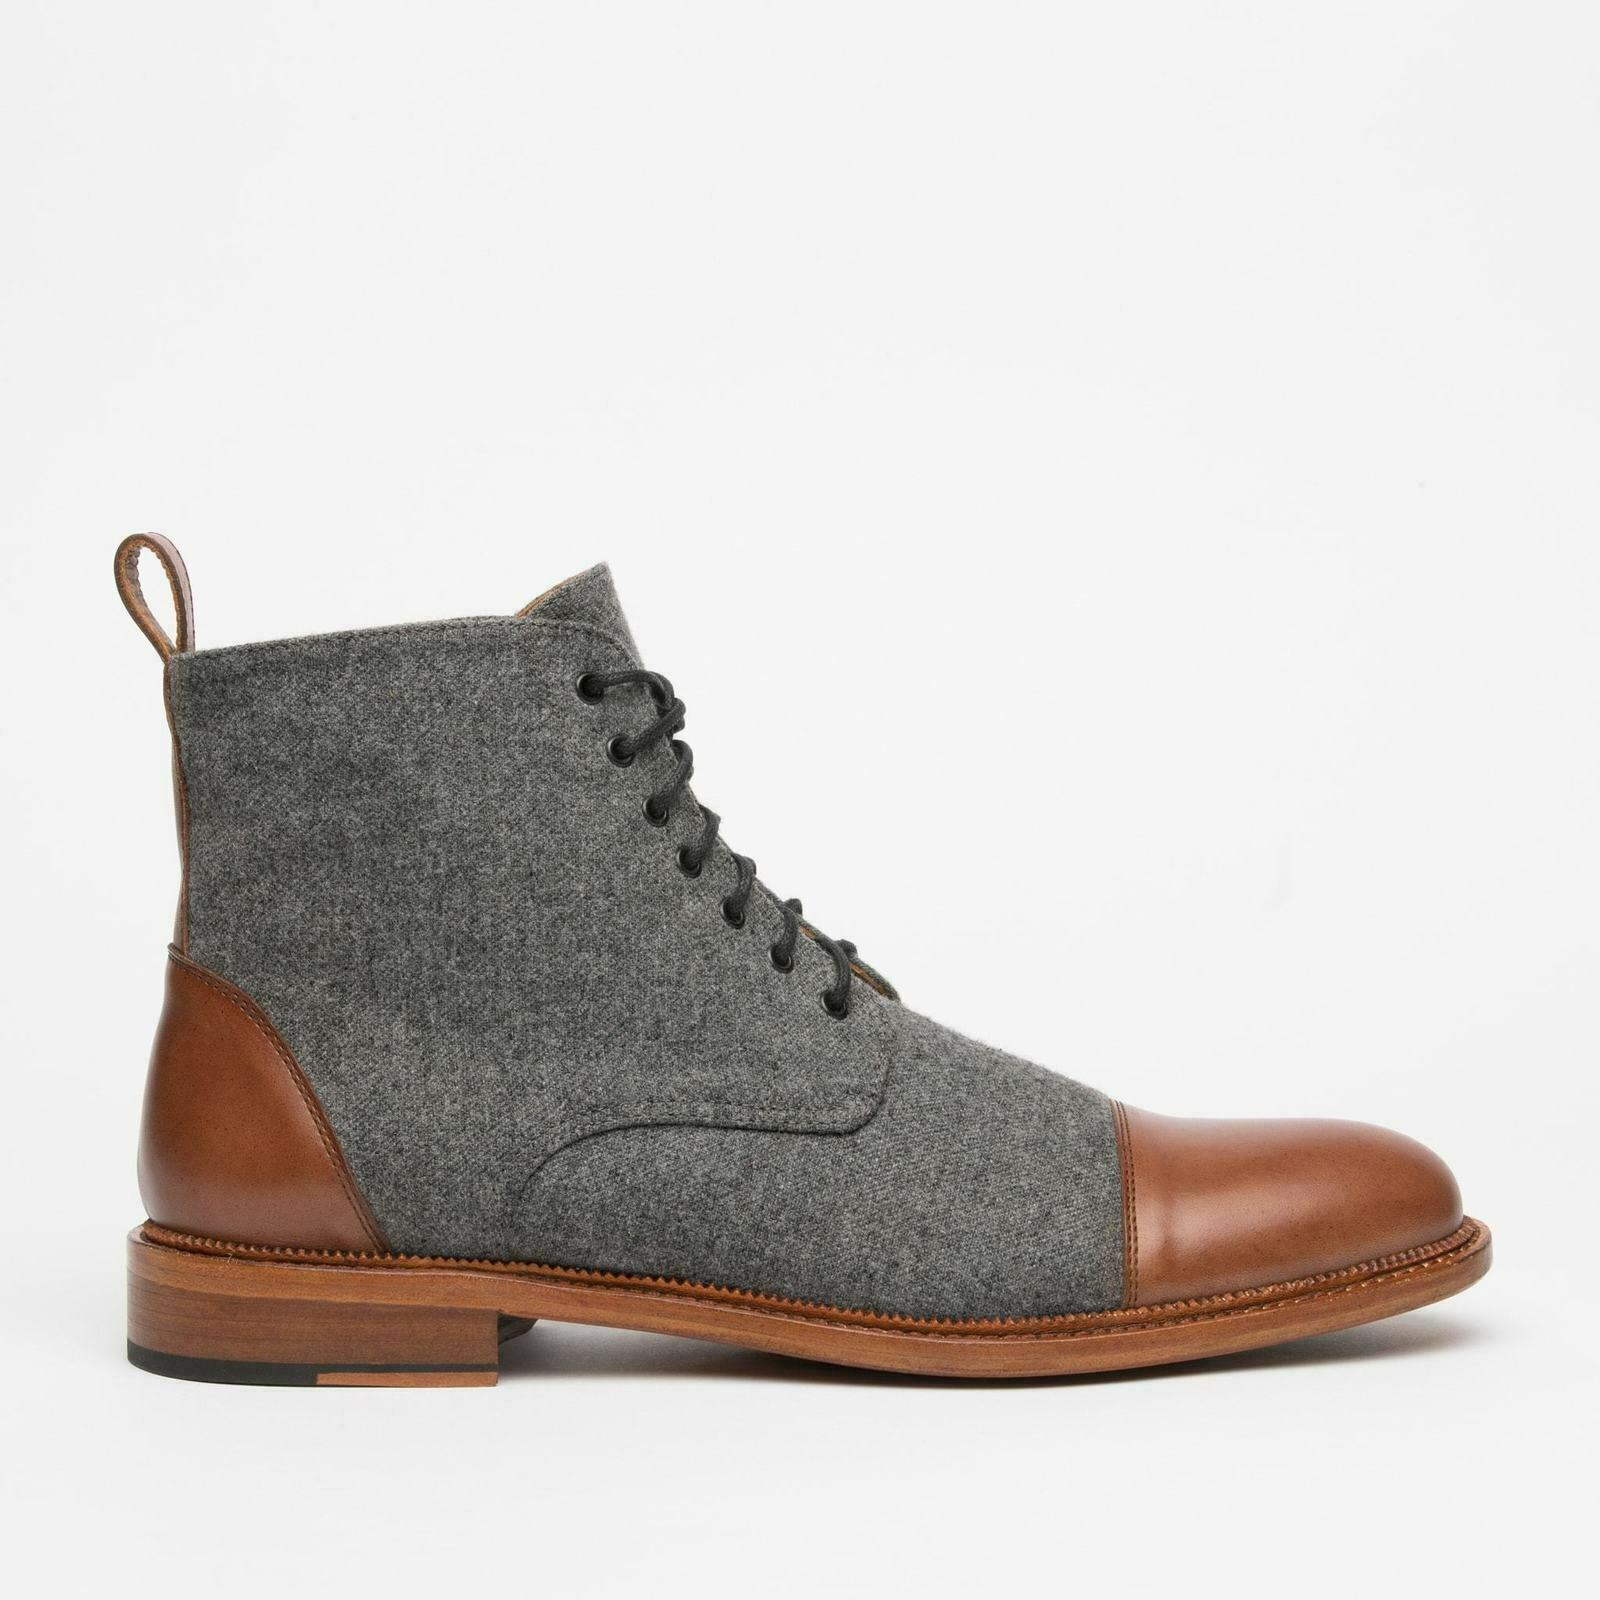 Tweed Brown Tone Cap Toe Genuine Vintage High Ankle Leather Lace Up Men Boots image 2